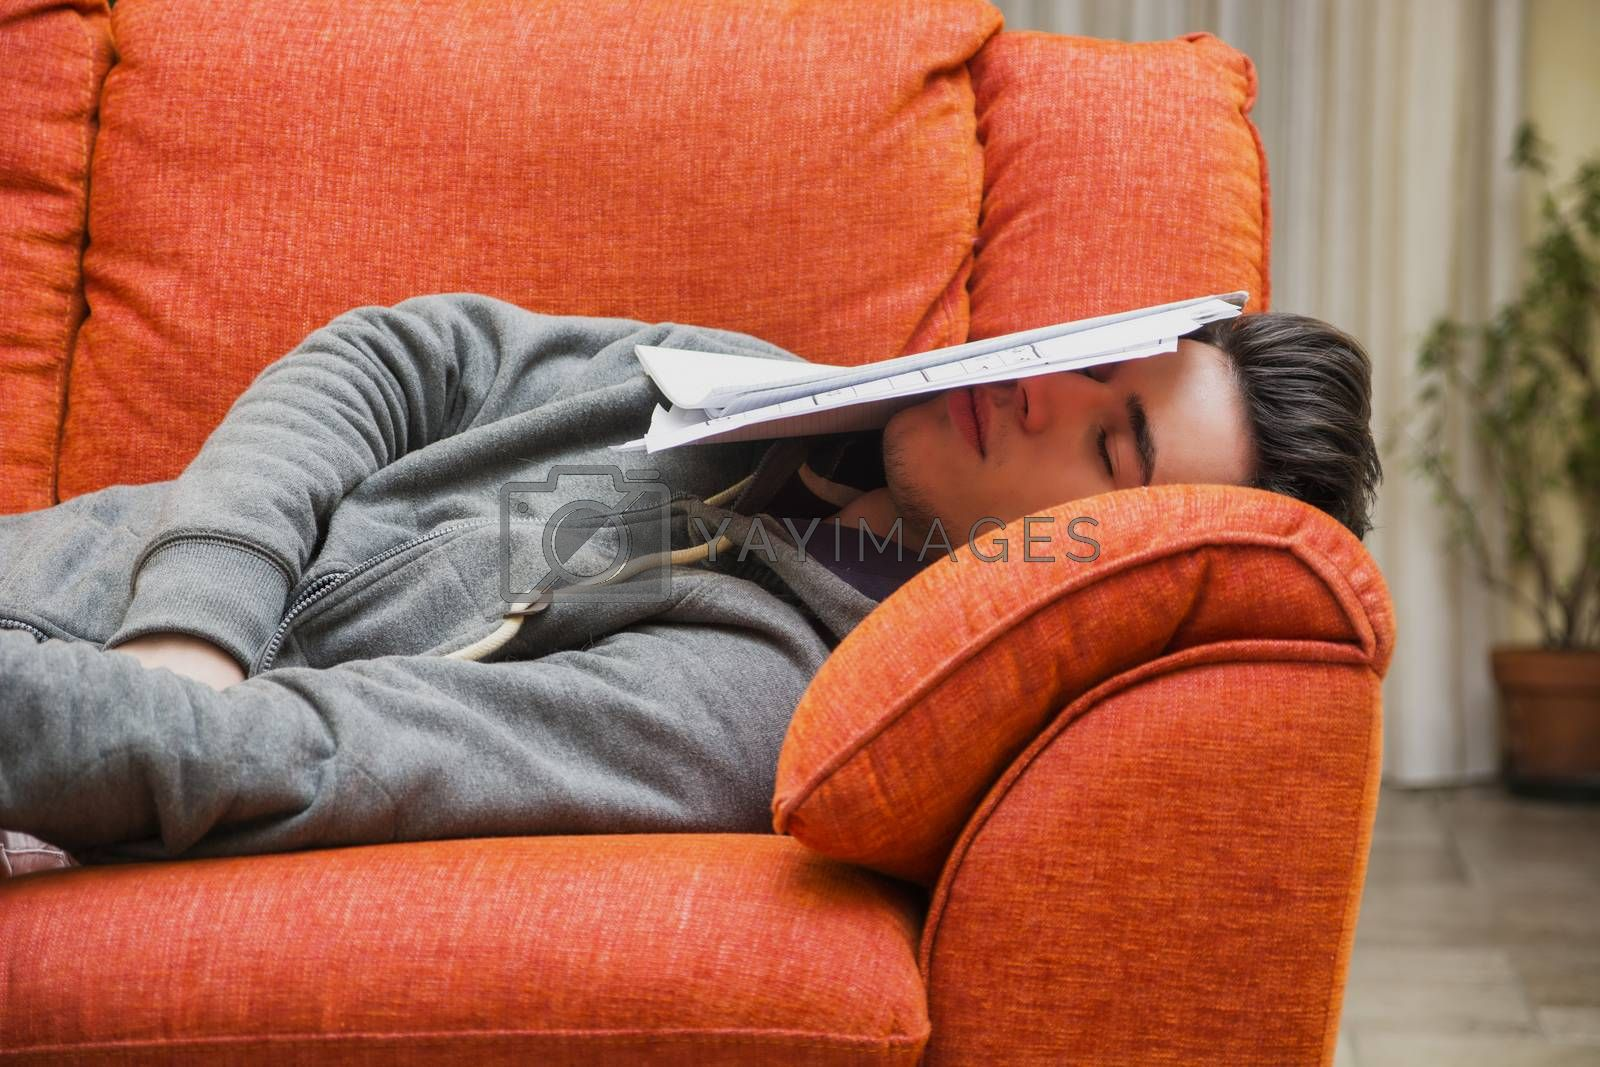 Over-worked, tired young man at home sleeping instead of working or studying, resting with head covered by paper sheets